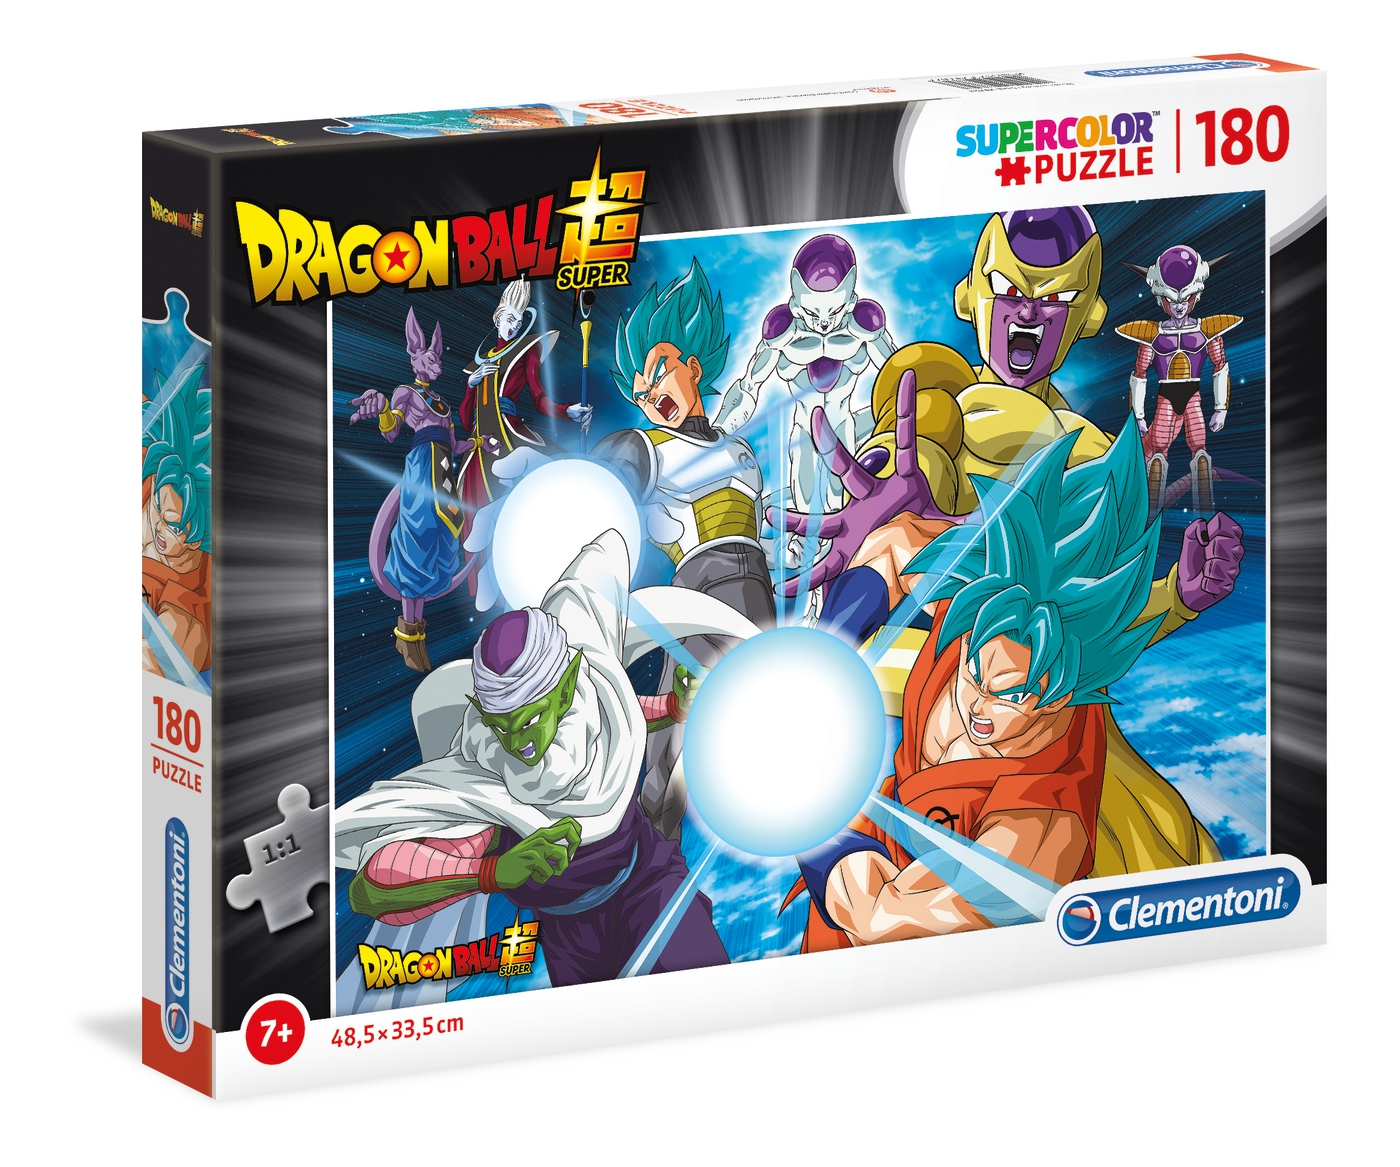 Dragon Ball Super - Puzzle Supercolor 180 pcs